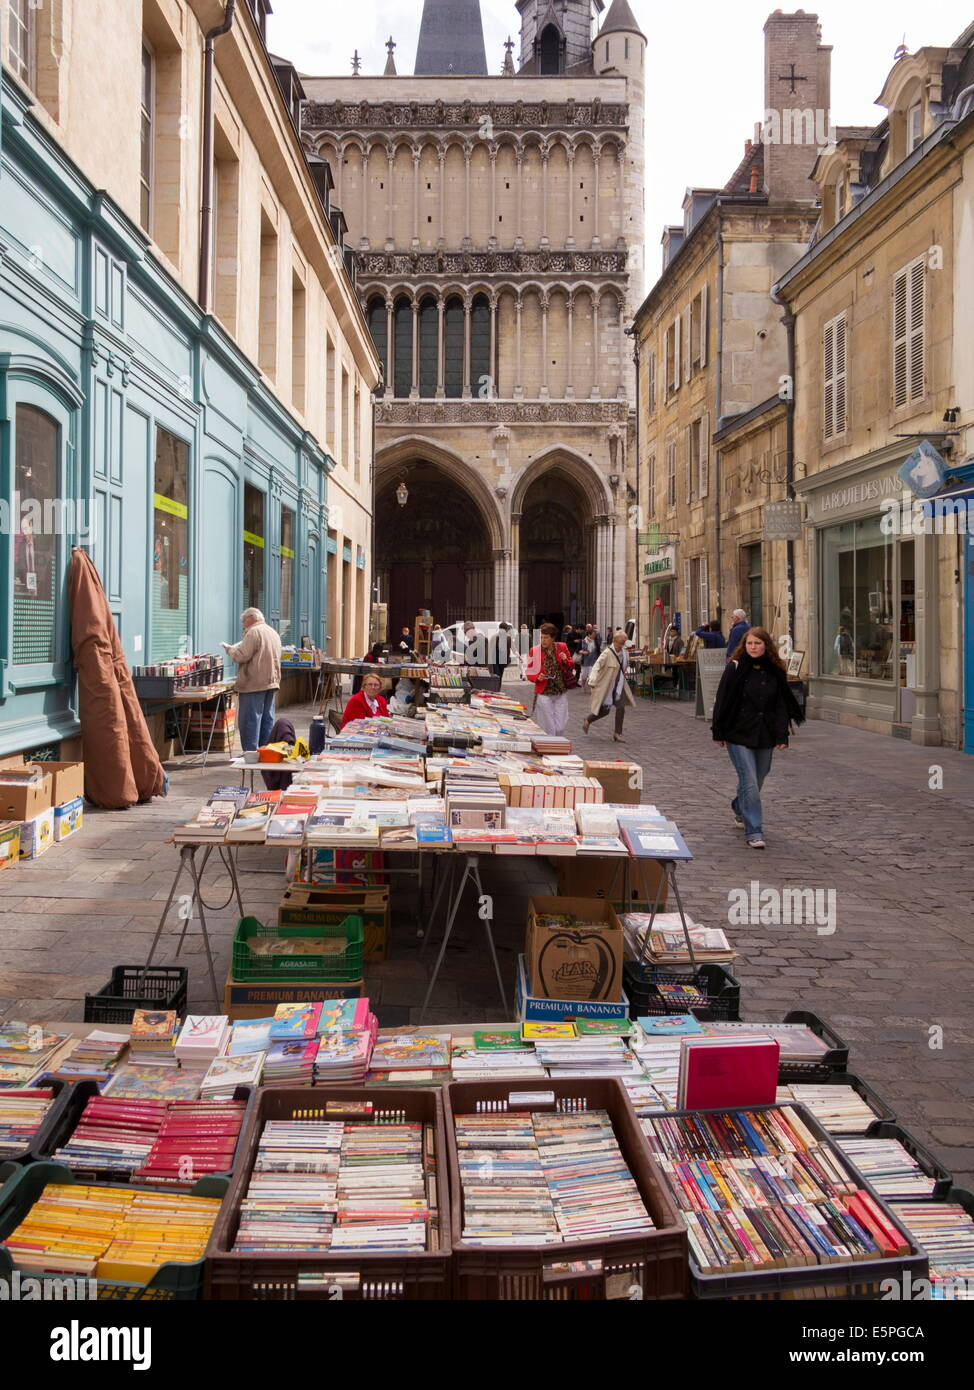 Booksellers' market stalls on Rue Musette and Church of Notre Dame, Dijon, Burgundy, France, Europe - Stock Image